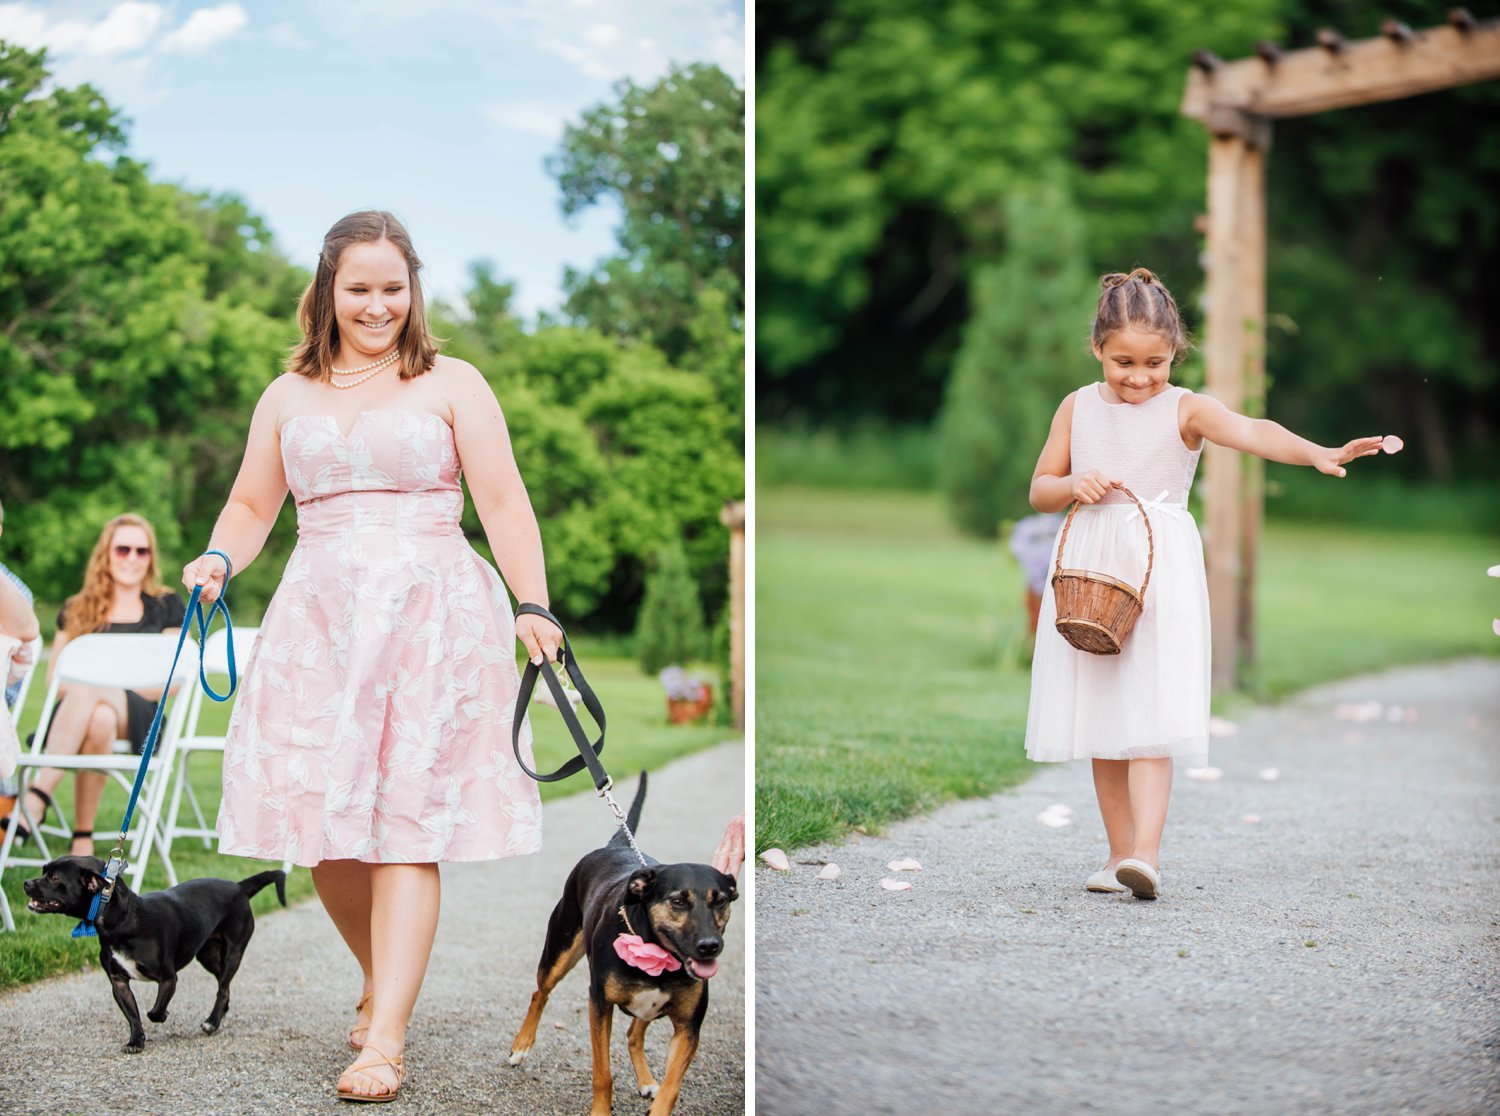 I love dog friendly weddings. Especially when they're incorporated into the ceremony like these cute pups!Photo by Maddie Mae Photography